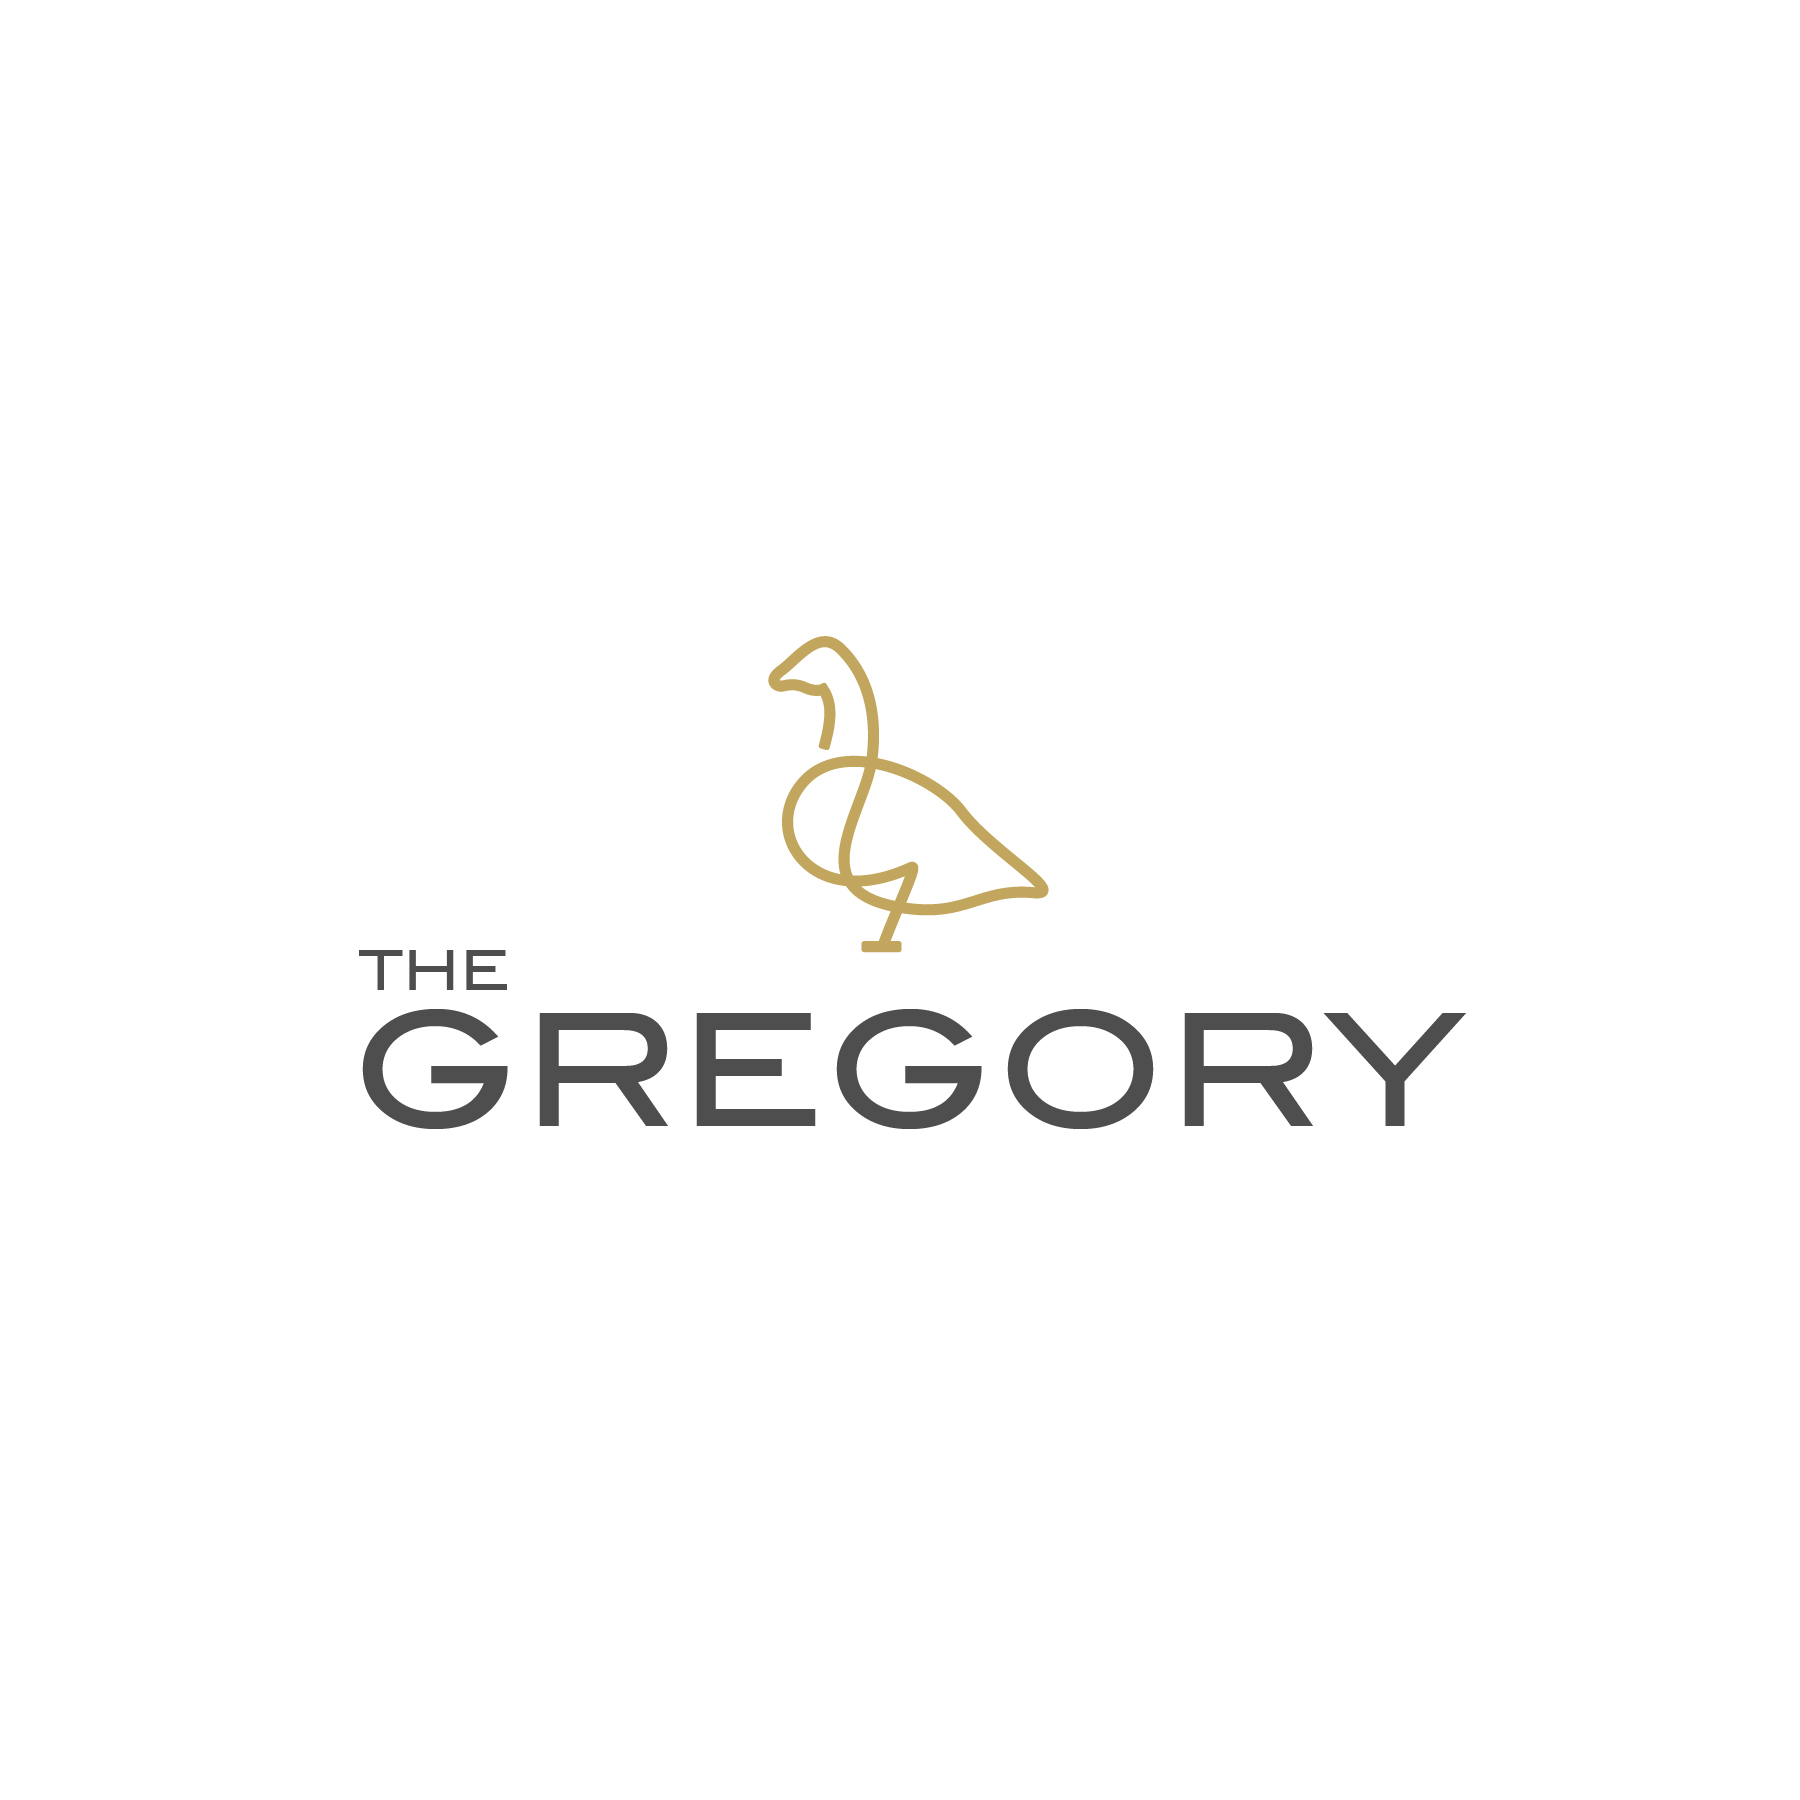 LOGOS: The Gregory